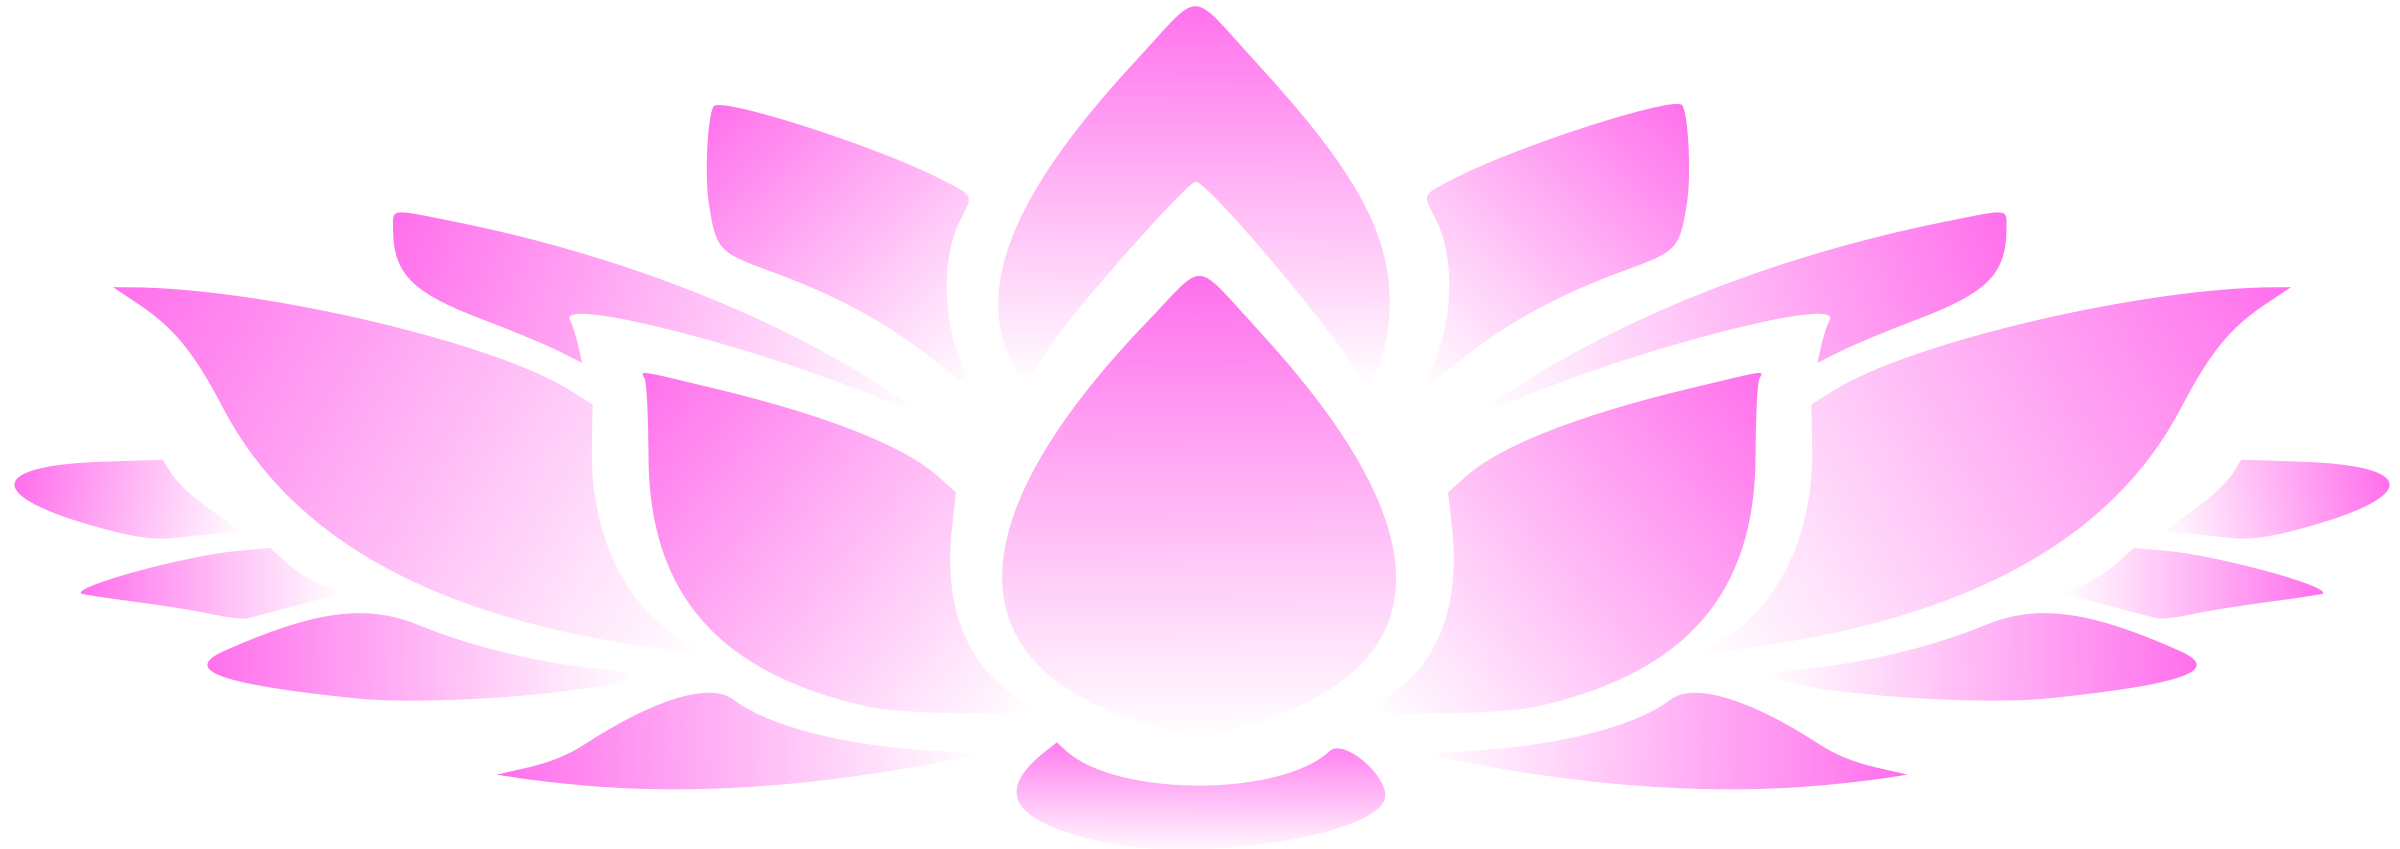 Lotus flower graphic png. Icons free and downloads